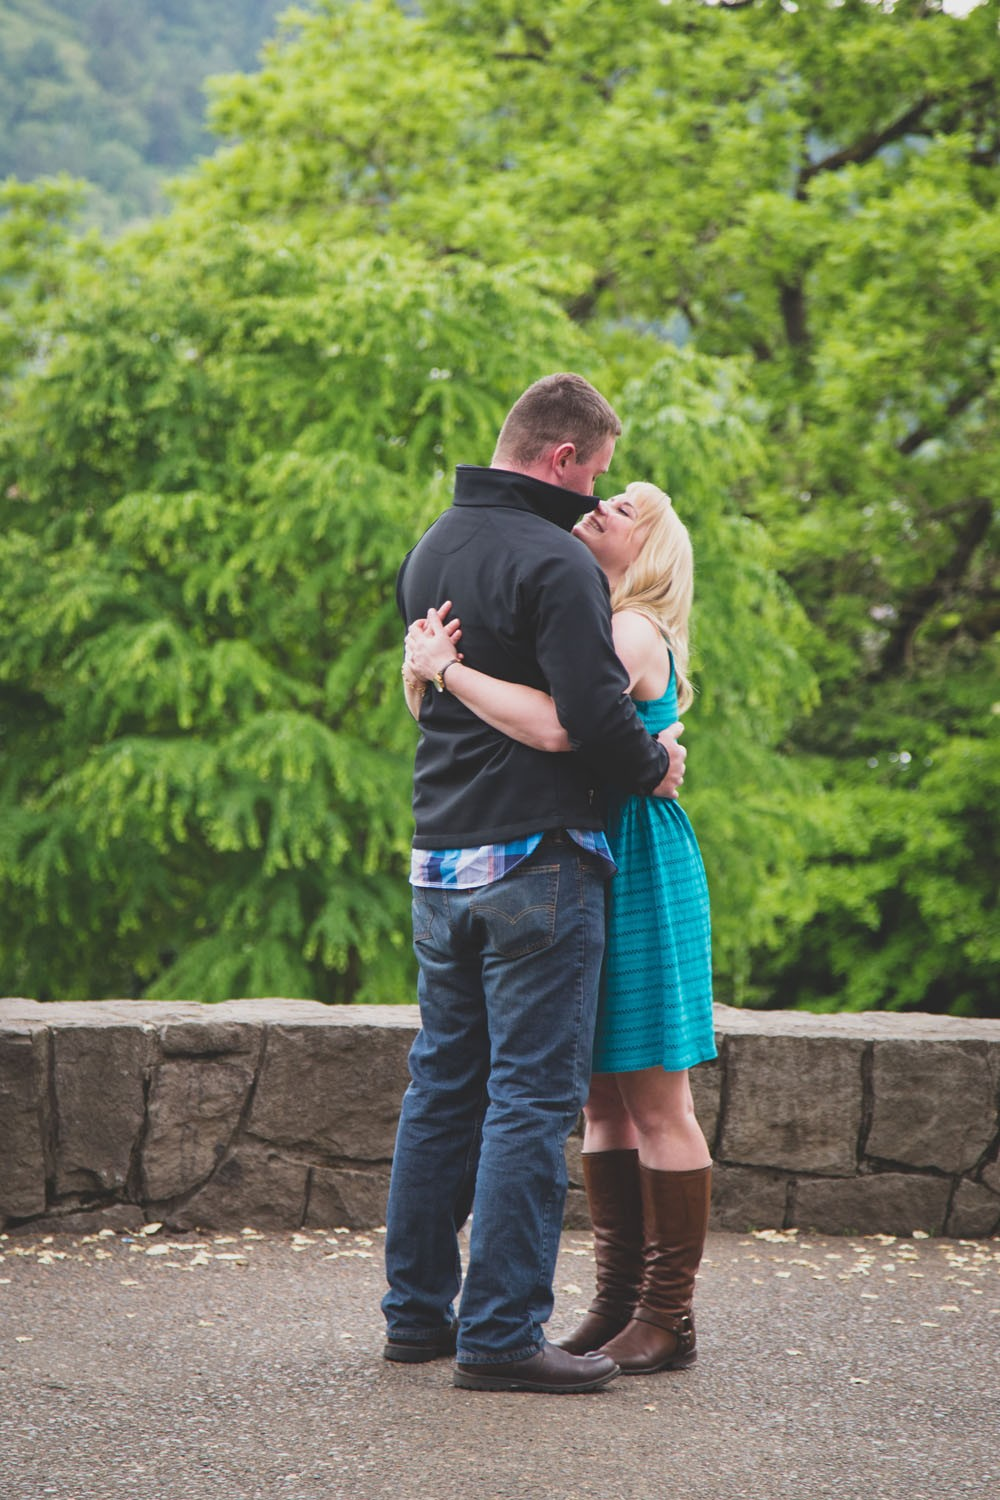 Rachael&Brandon Proposal Cat Dossett I Take Photos-10